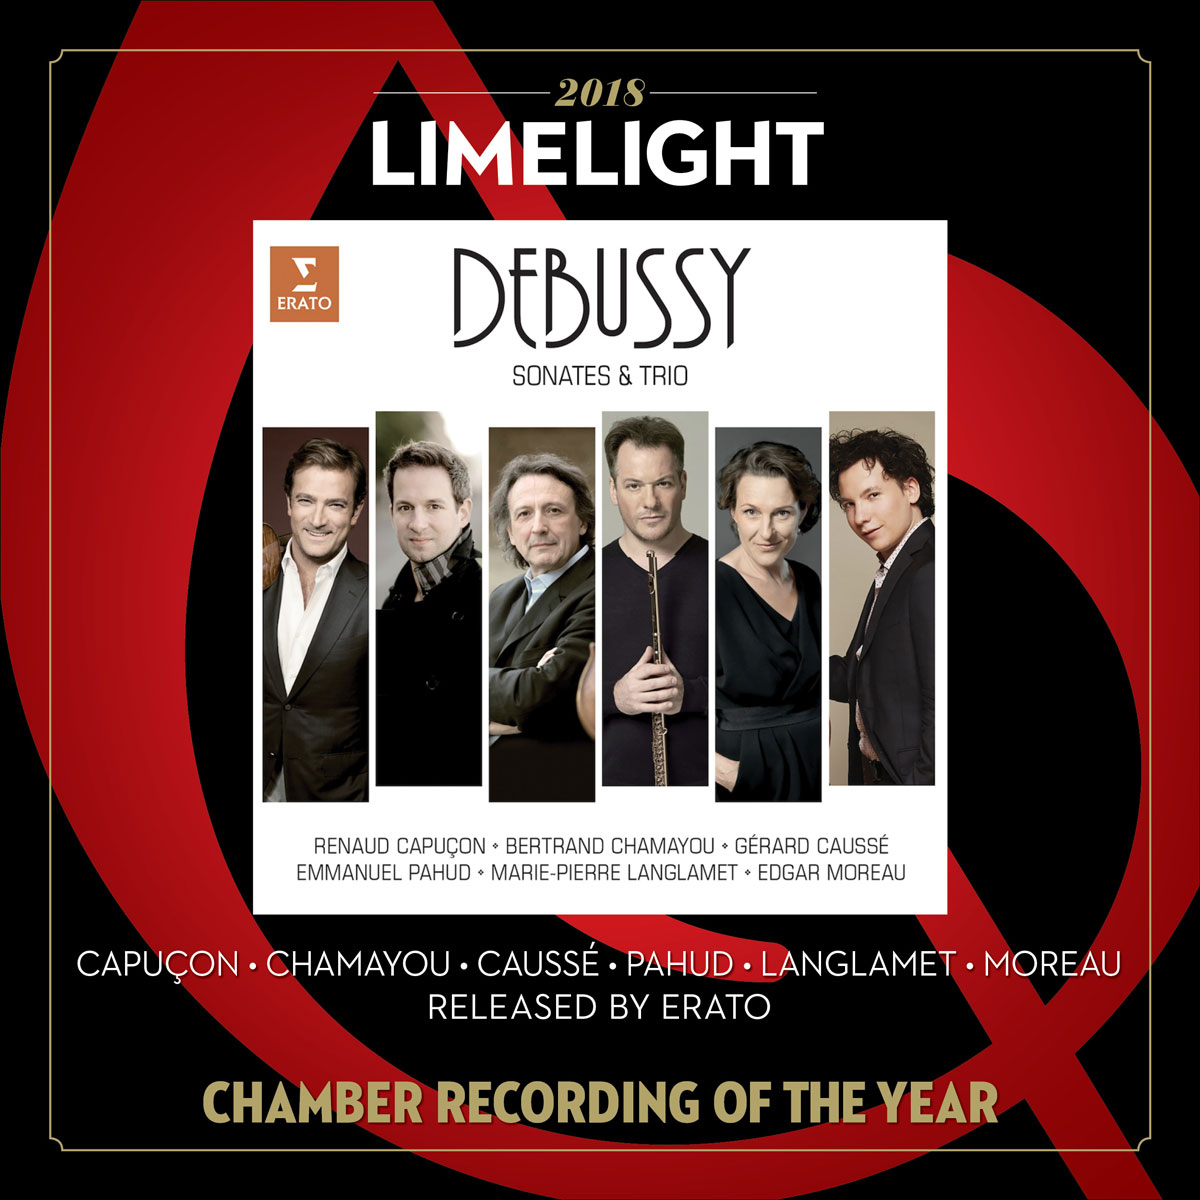 Chamber Recording of the Year, Limelight